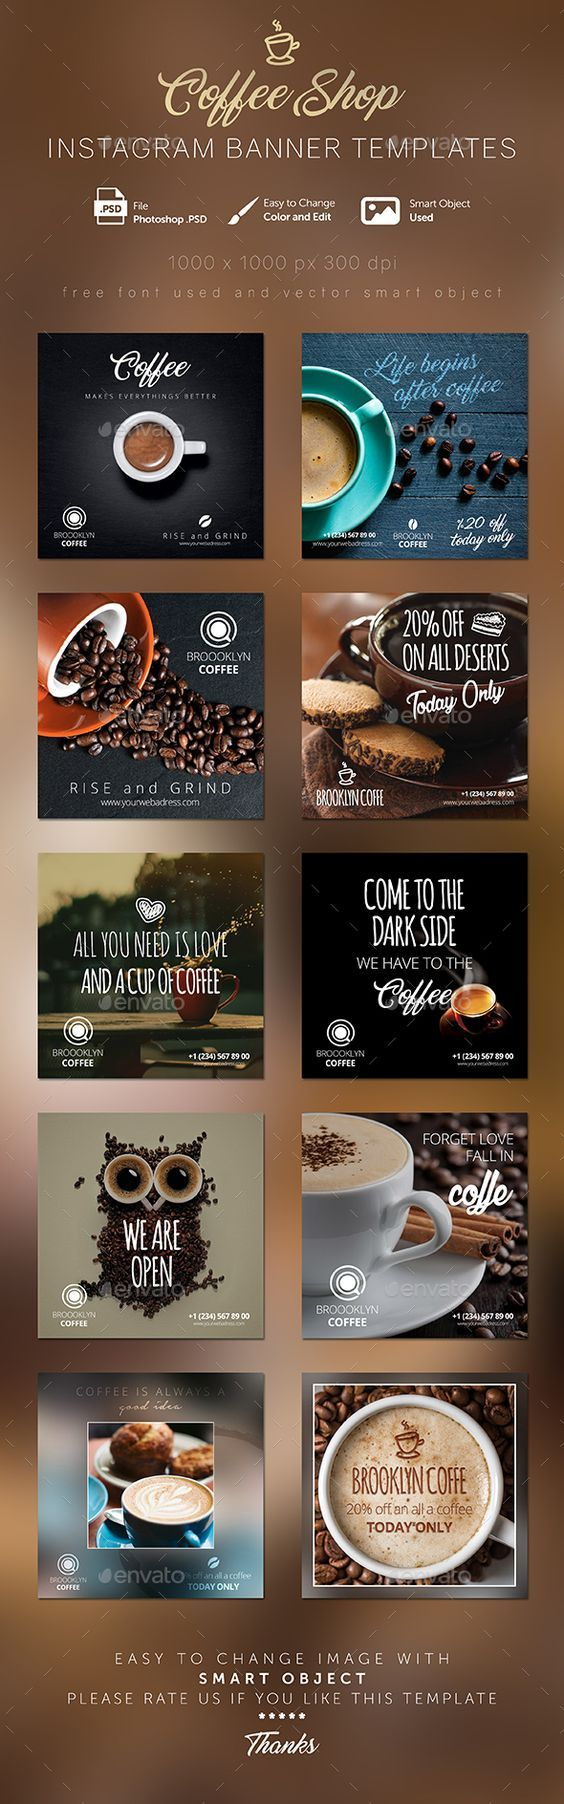 Coffee Shop Instagram Banner Templates - Social Media Web Template PSD. Download here: http://graphicriver.net/item/coffee-shop-instagram-banner-templates/16575215?ref=yinkira: